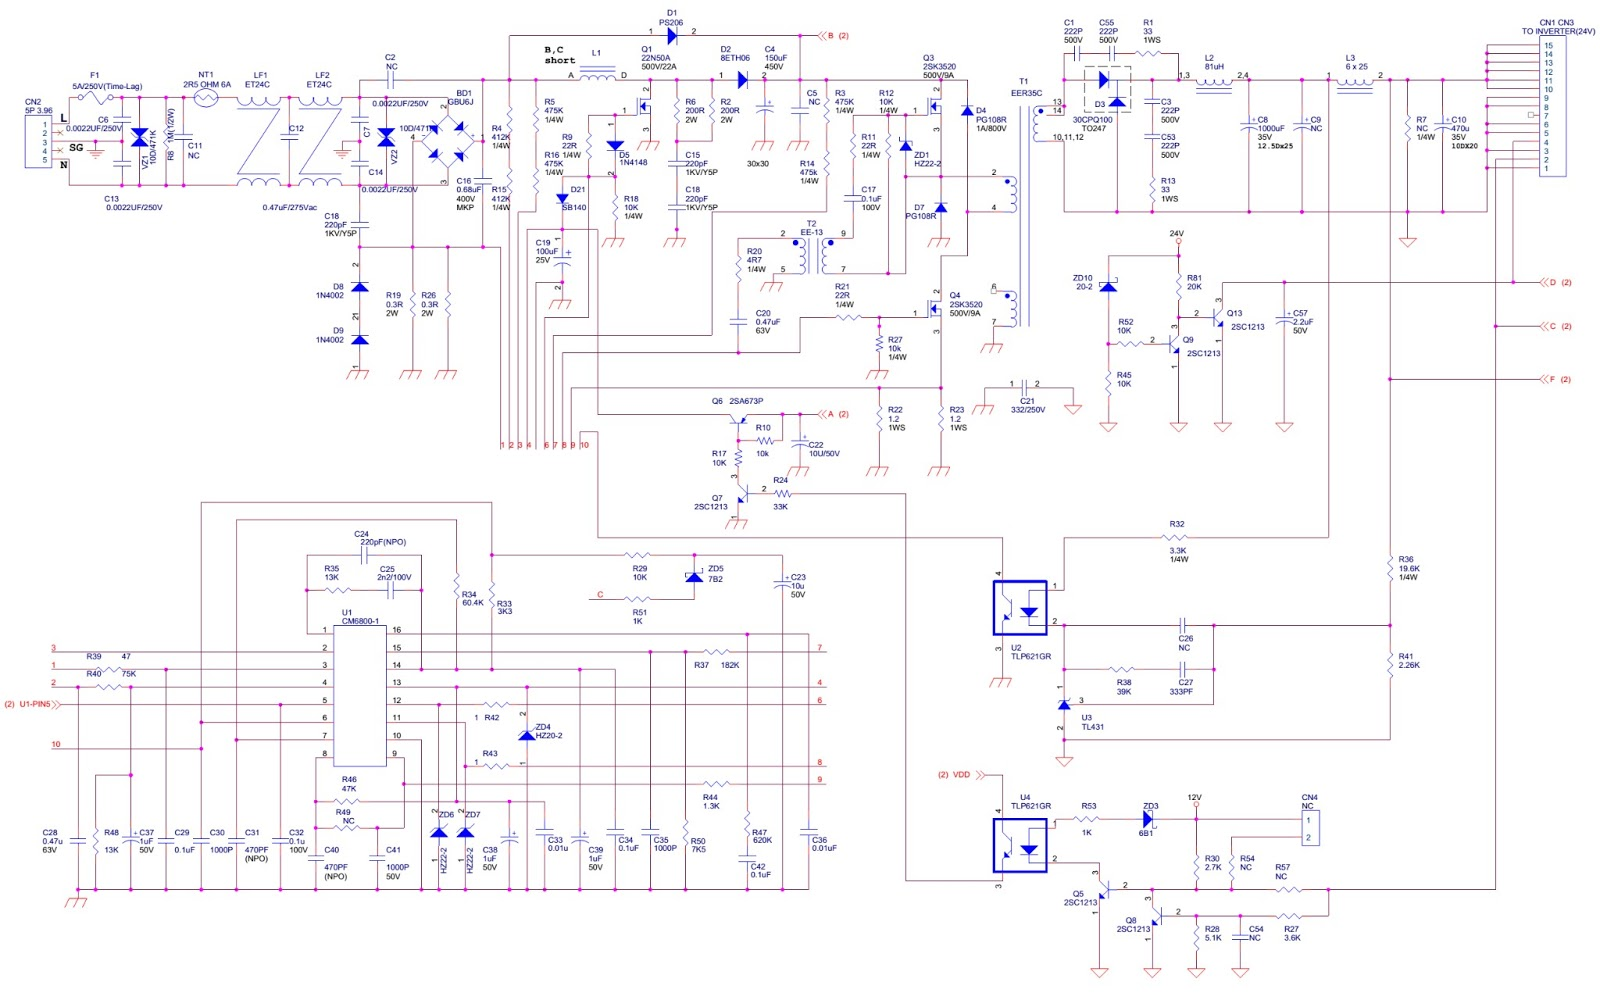 vizio l30wgu 30 lcd tv main power schematic circuit diagram rh electronicshelponline blogspot com visio wiring diagram and excel visio wiring diagram and excel